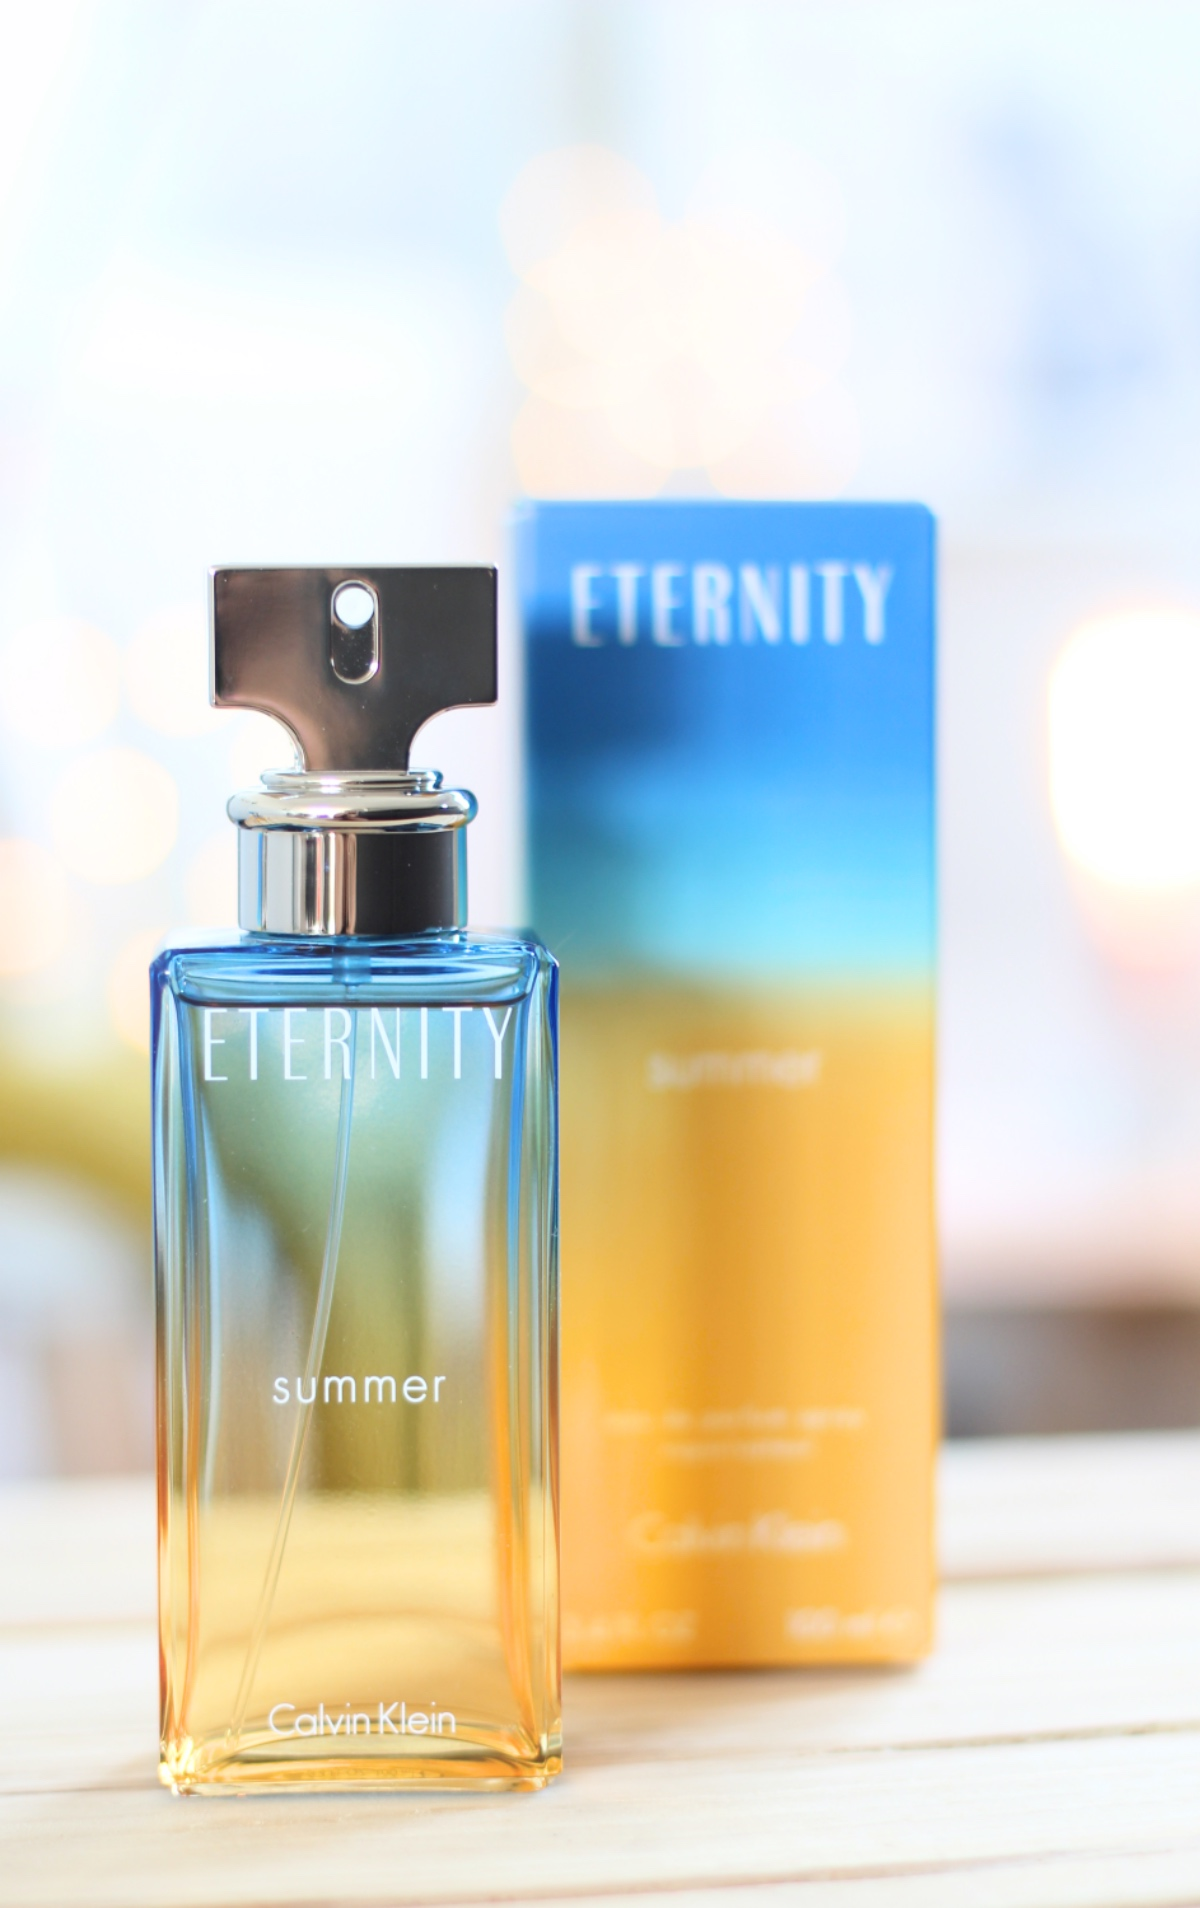 Calvin Klein Eternity Summer for women